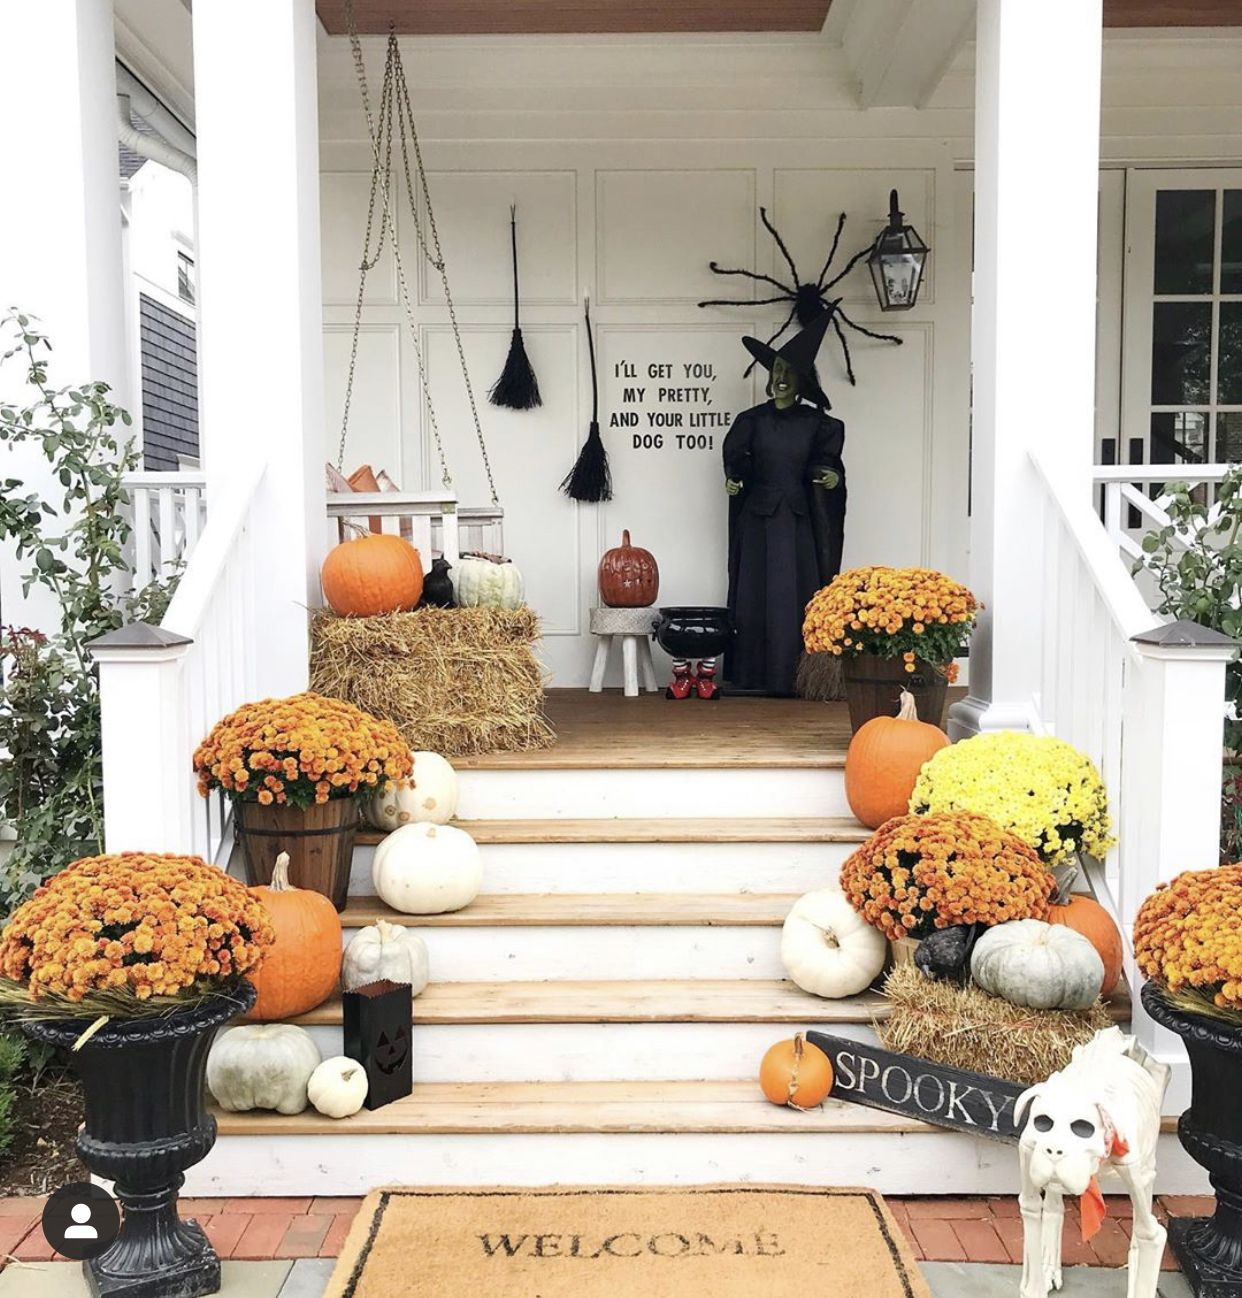 14 Stunning Front Porches With Fall Decor Halloween Front Door Decorations Fall Decorations Porch Front Porch Decorating